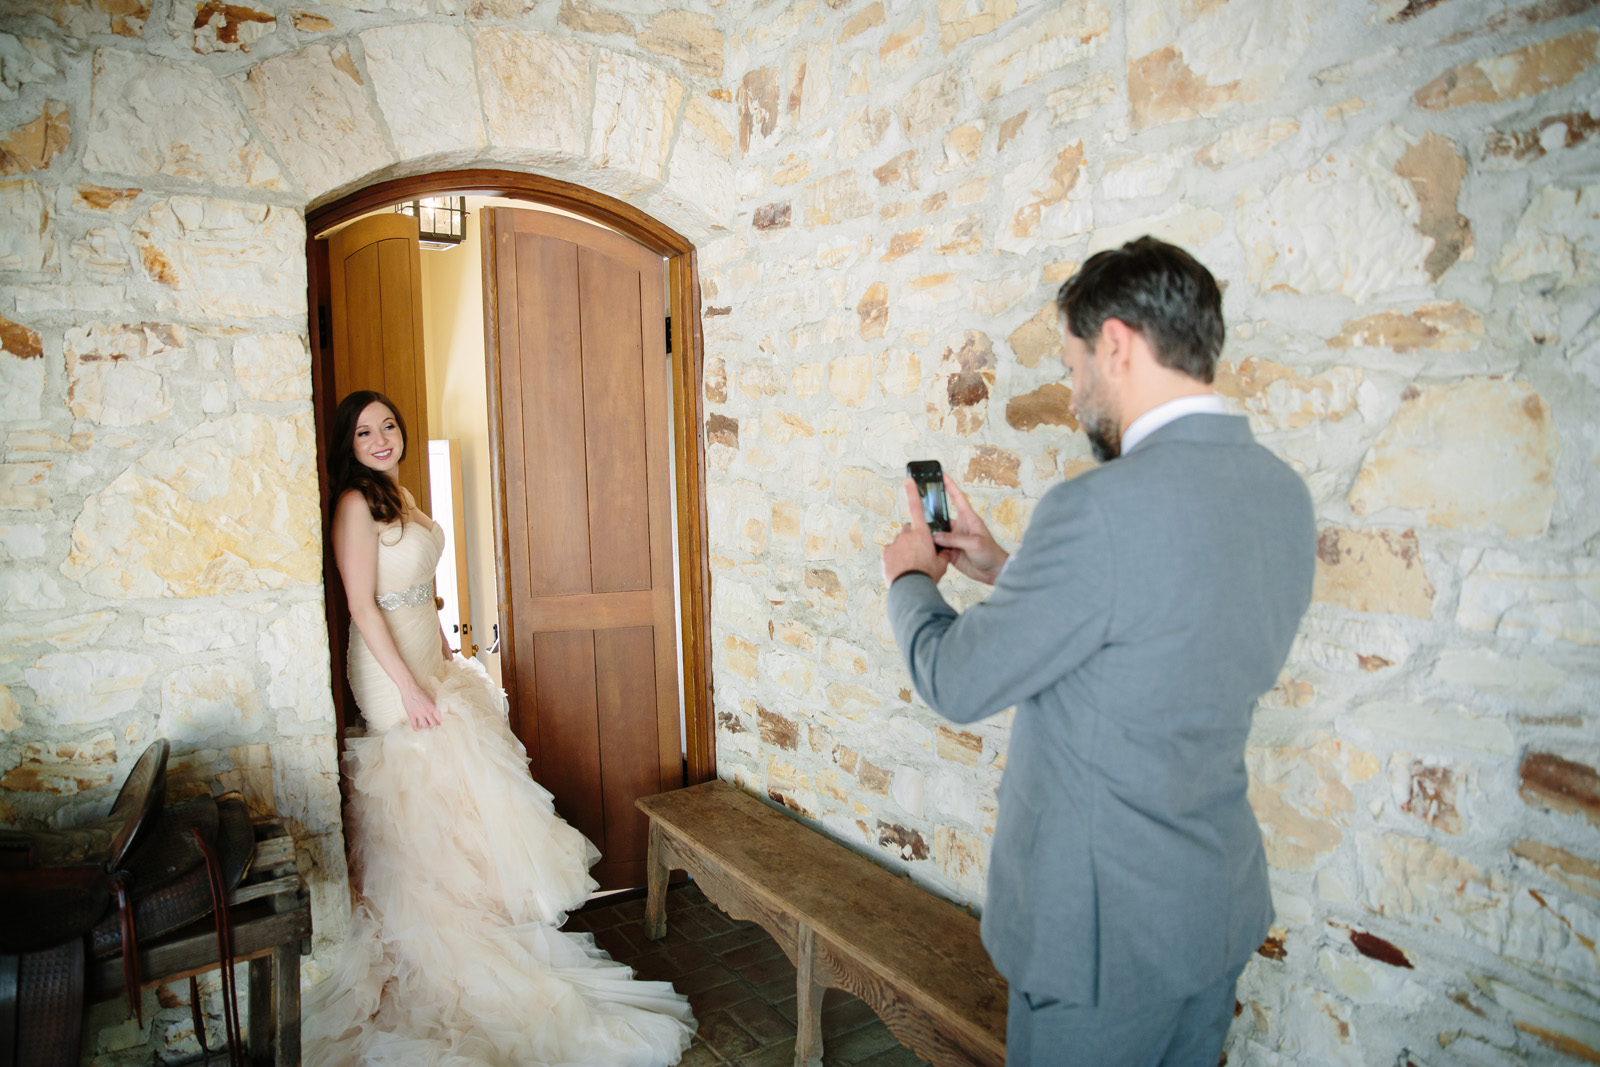 what you shouldn't post on social media when wedding planning